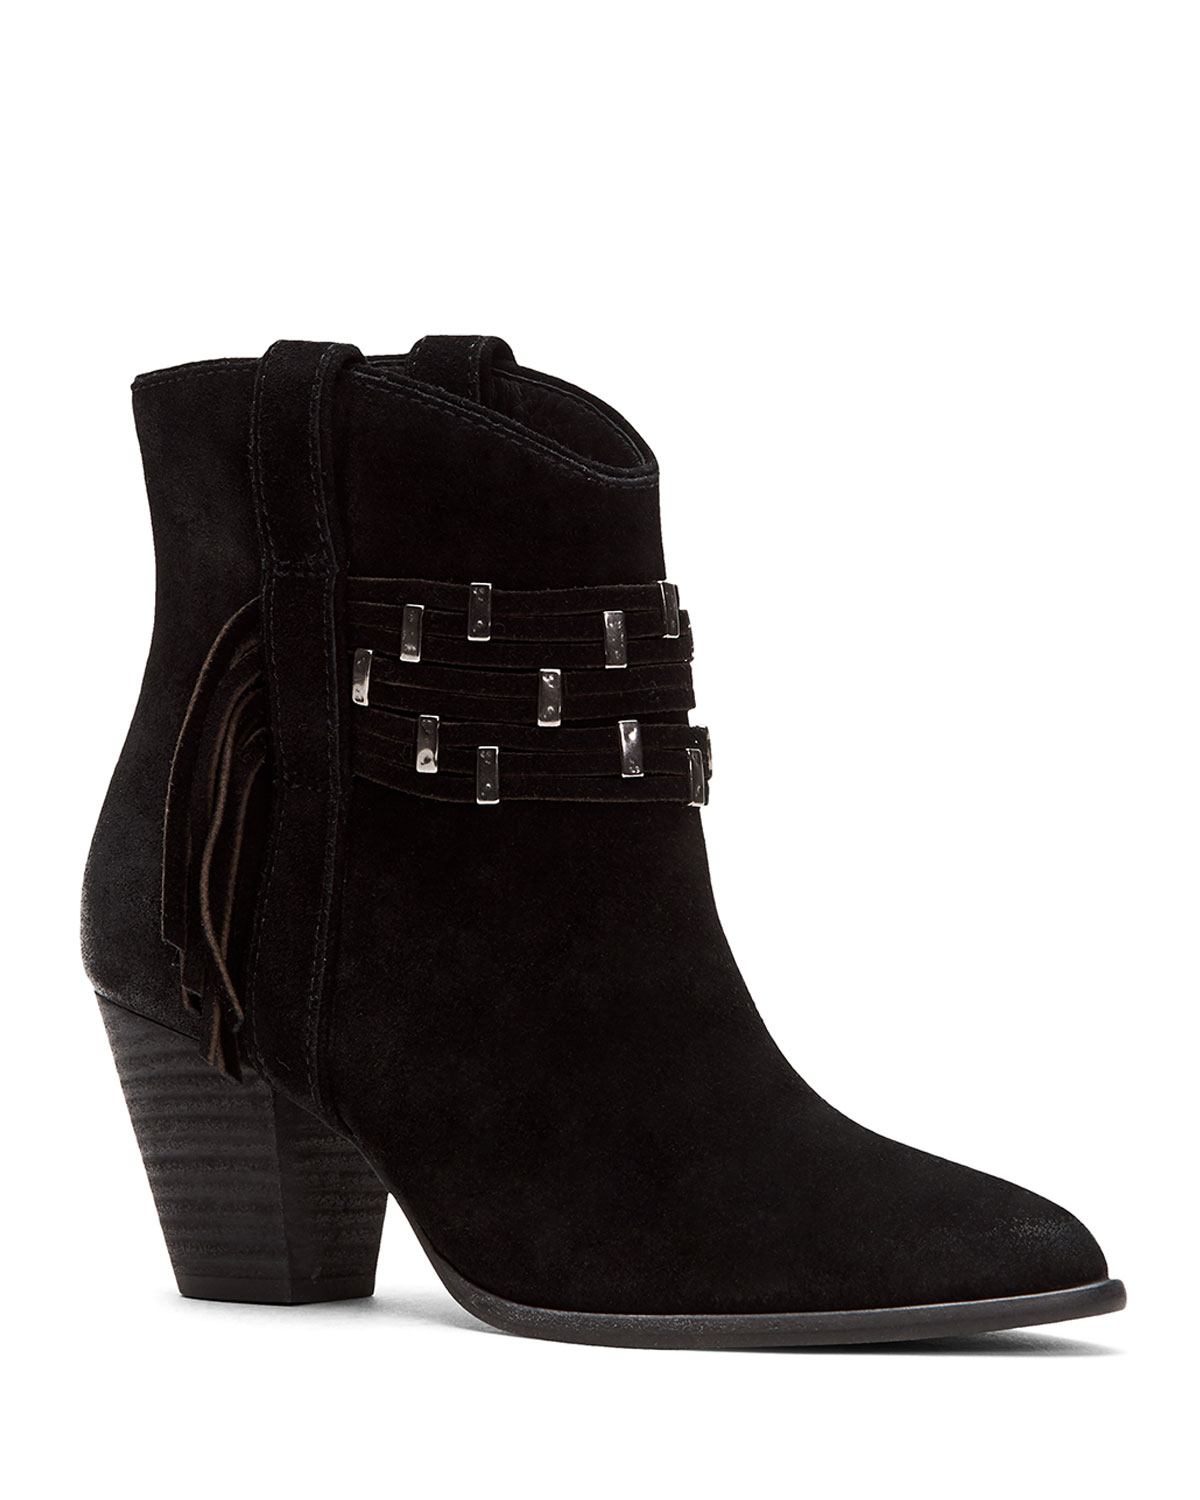 Frye Boots REED SHOWDOWN STUDDED BOOTIES